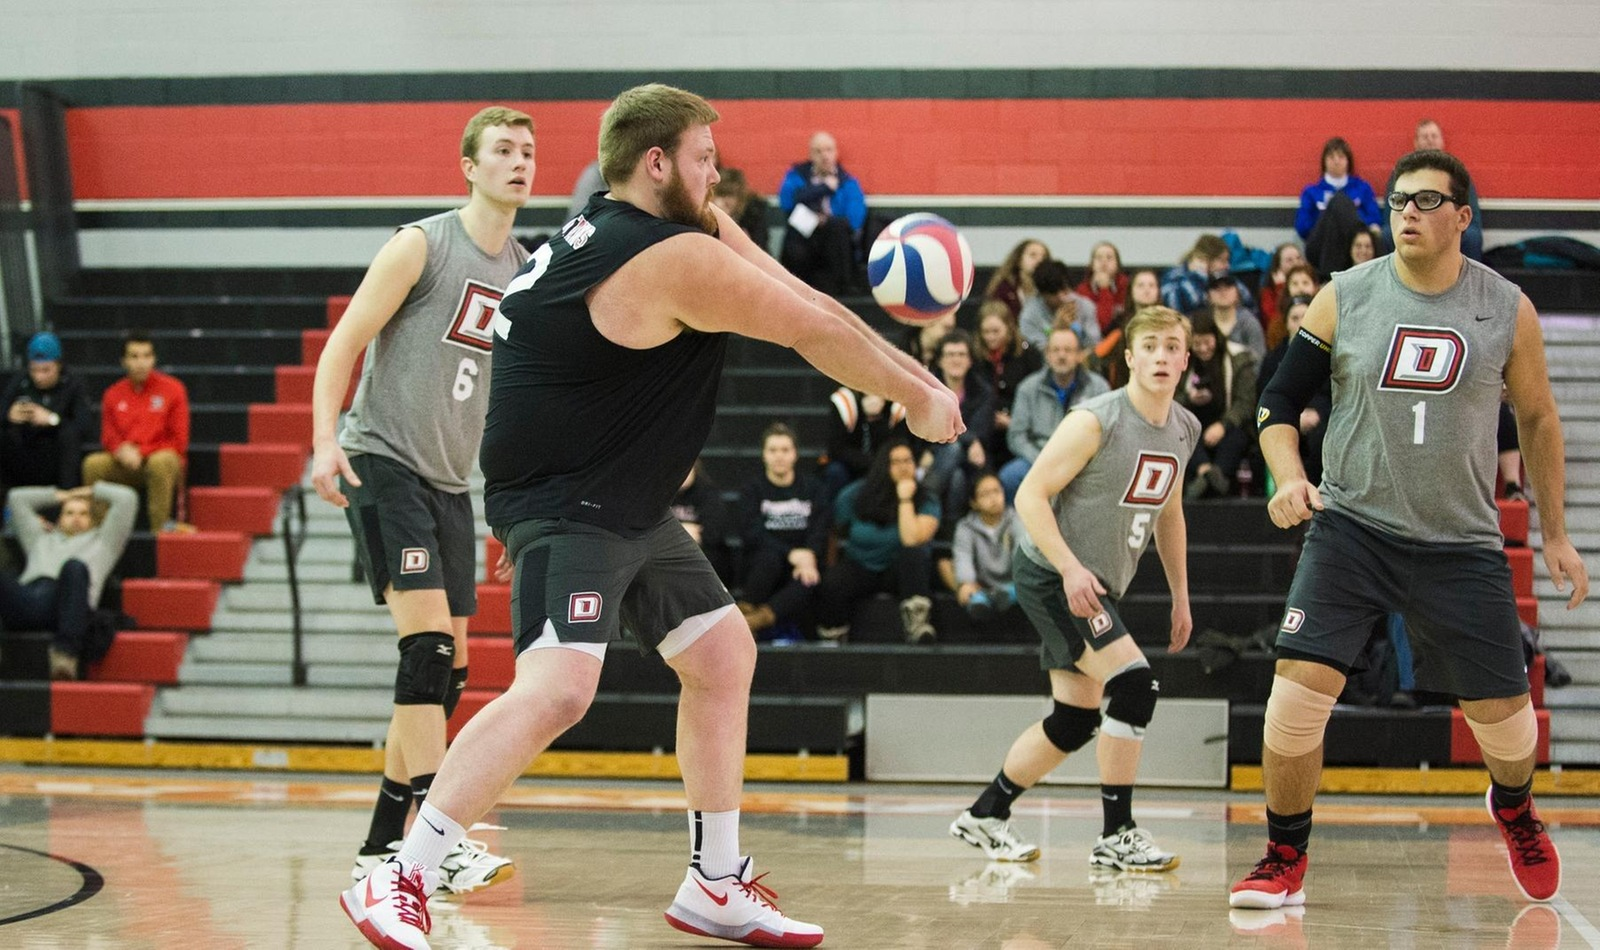 D'Youville Volleyball Keeps Playoff Hopes Alive with Saturday Split